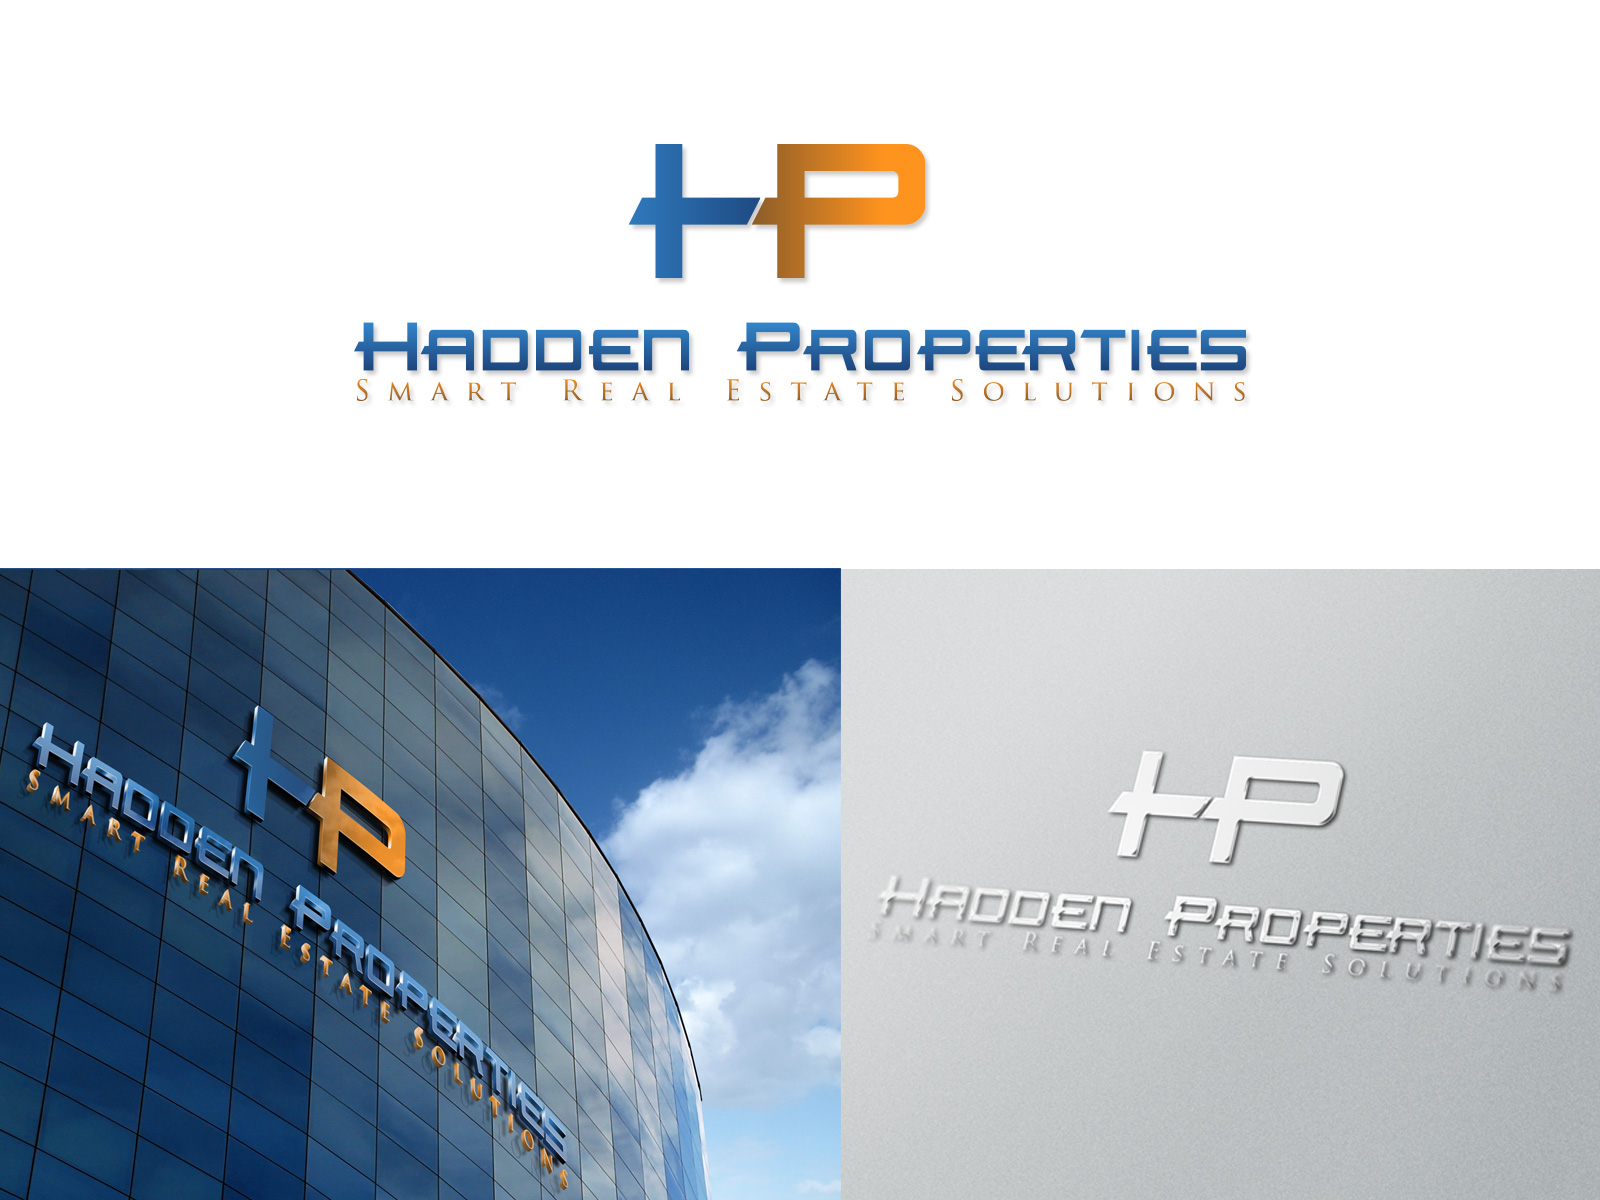 Logo Design by olii - Entry No. 109 in the Logo Design Contest Artistic Logo Design for Hadden Properties.